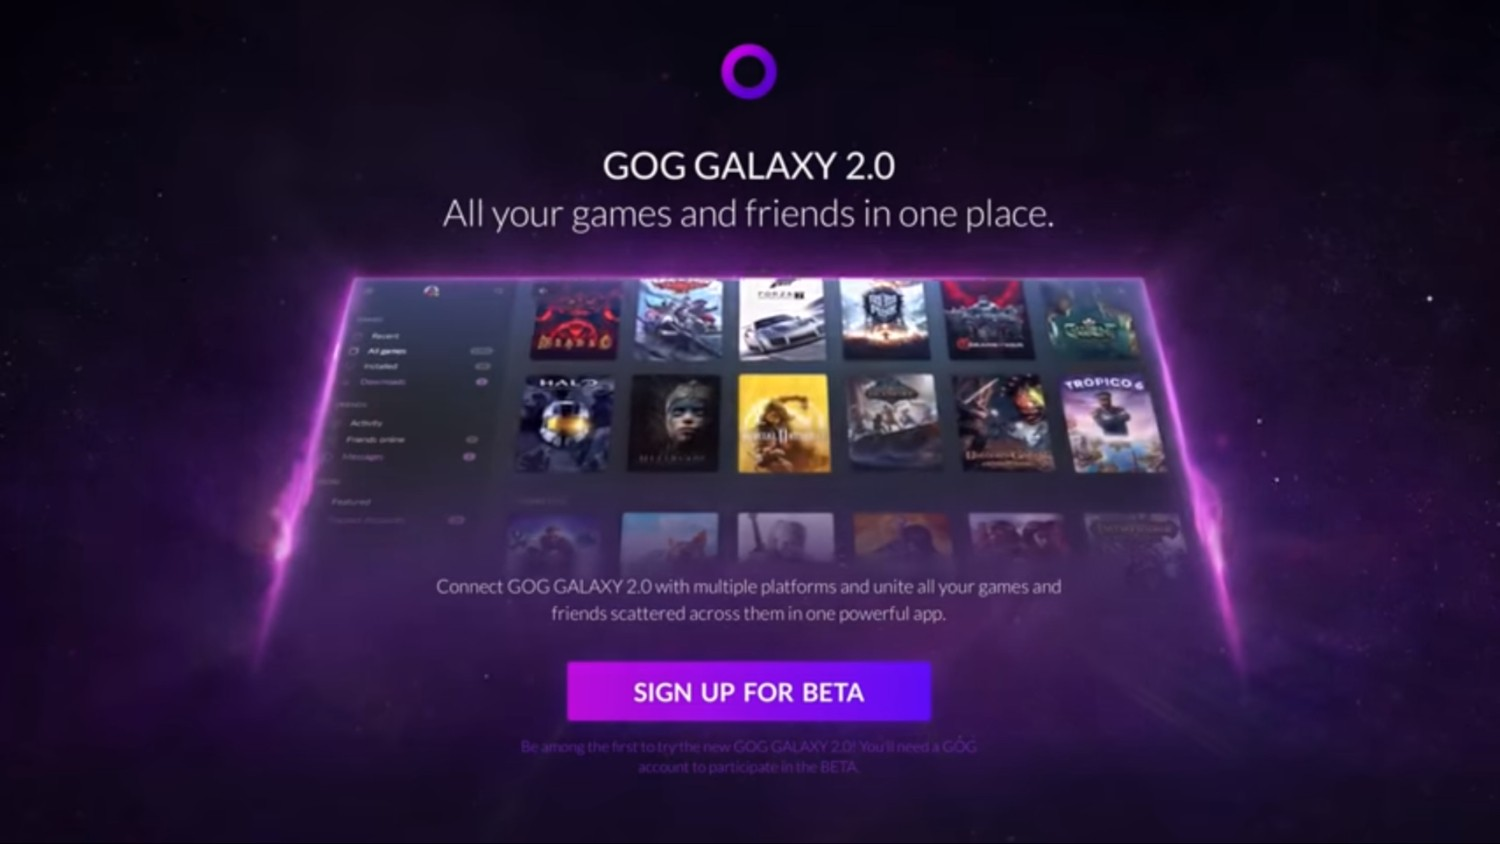 GOG Galaxy 2.0 Atlas Update Released with Major New Features, Improvements